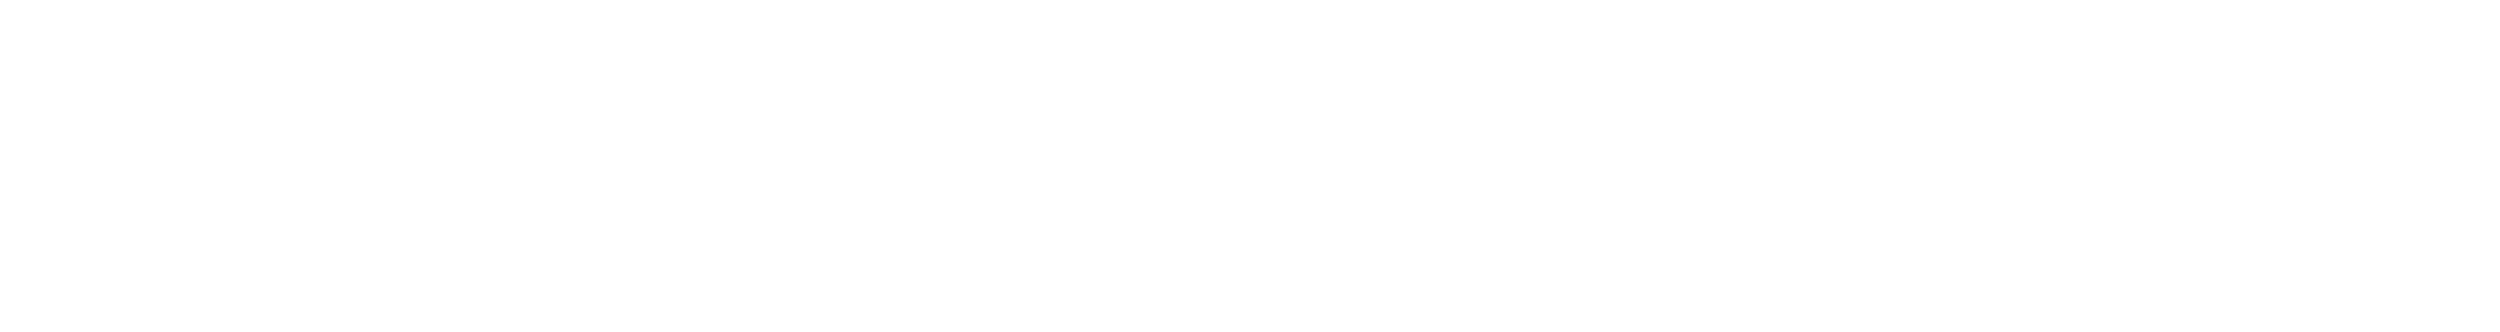 verge white.png